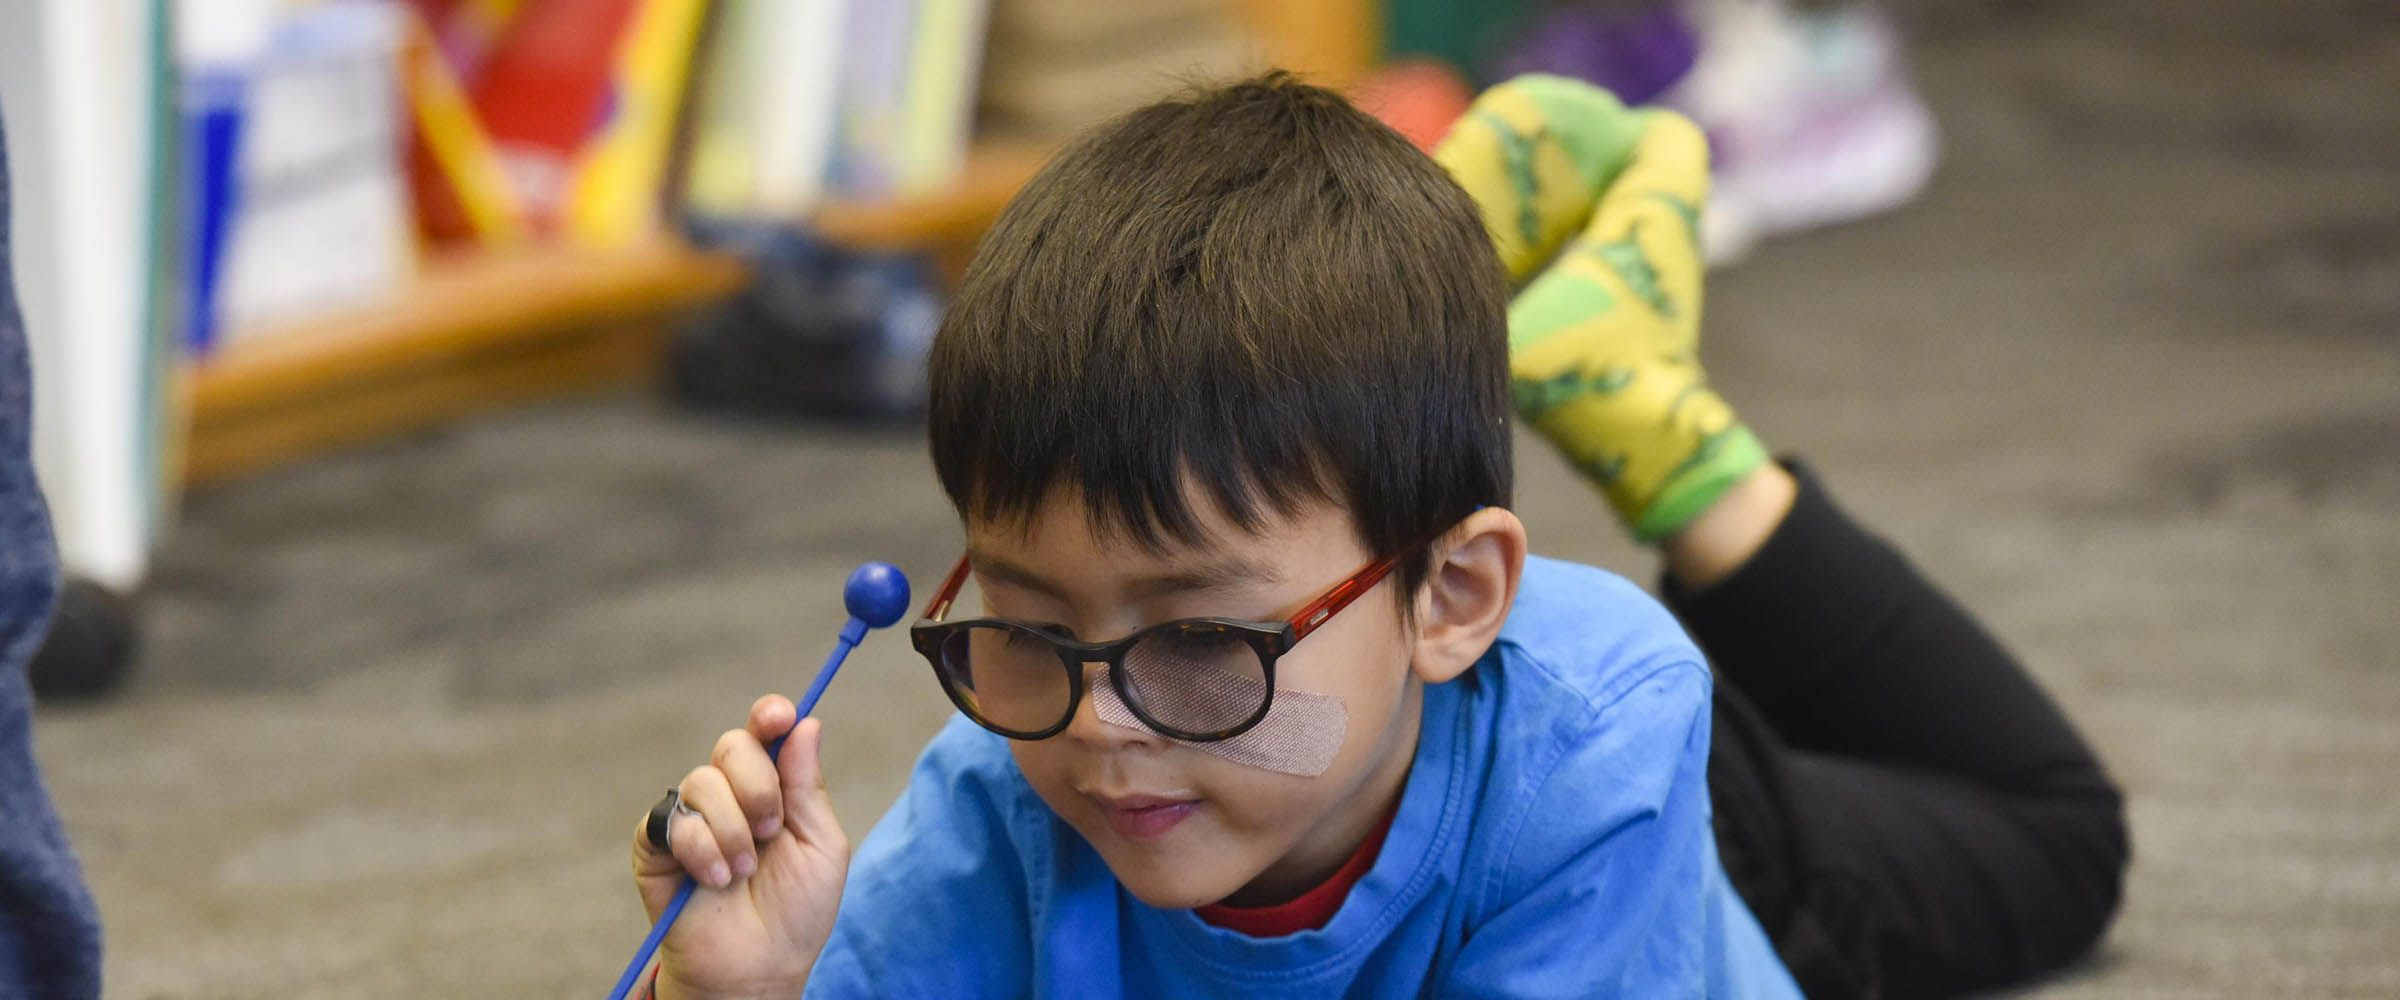 Young boy in glasses plays a xylophone at Colorado Academy, a top private PK-12 school in Denver.